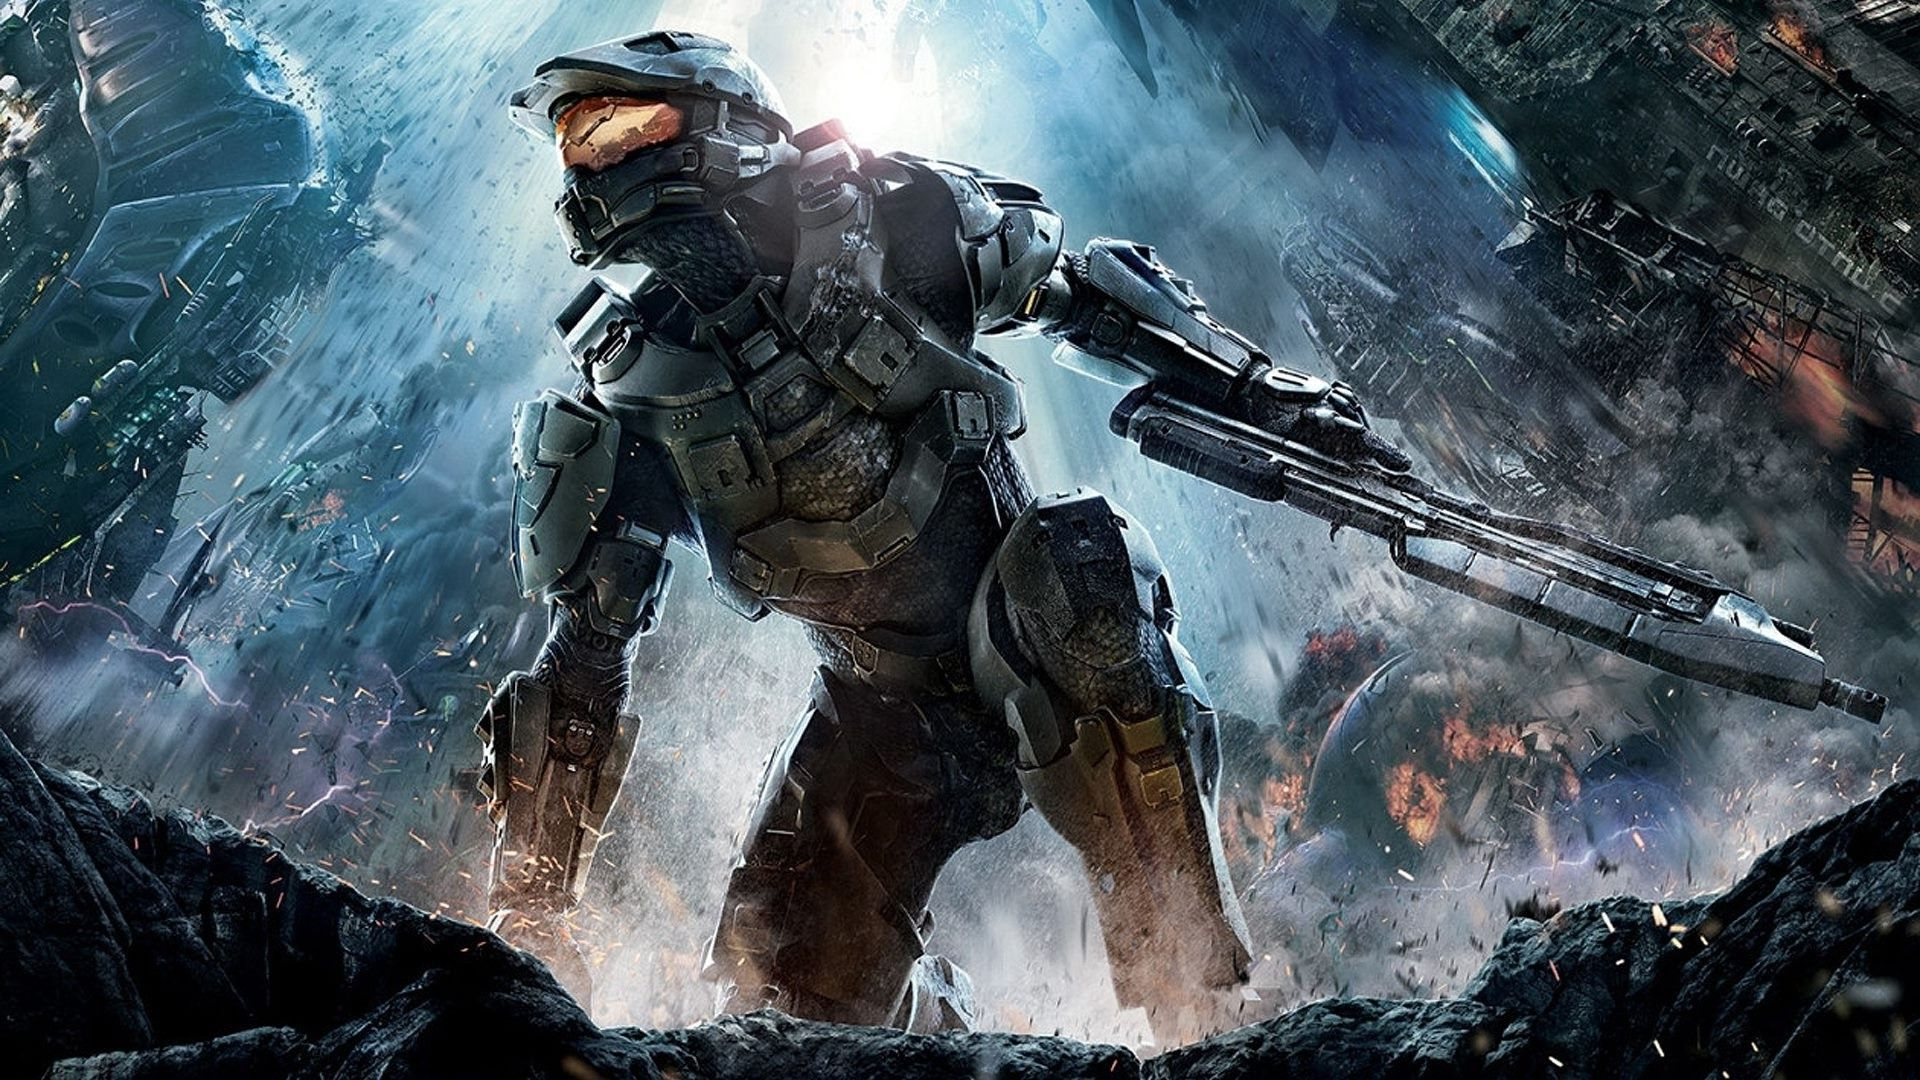 halo wallpaper hd by ockre on deviantart 1920 1080 halo 4 wallpapers